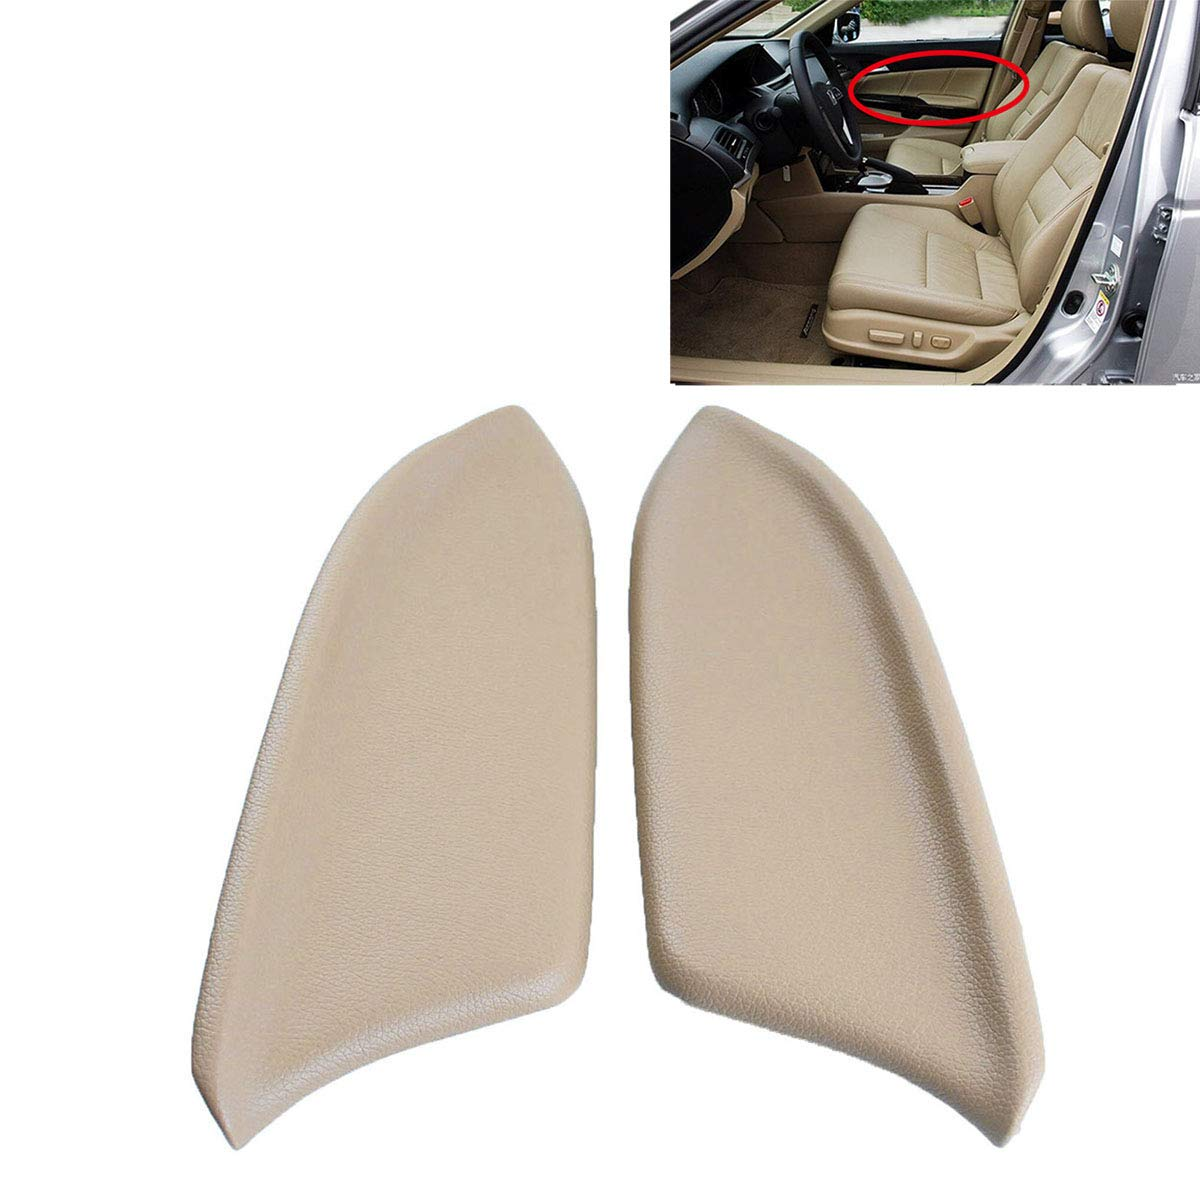 Only the Leather Parts Not include the Lid Ezzy Auto Beige Armrest Vinyl Front Door Panels Armrest Lid for 2008-2012 Honda Accord